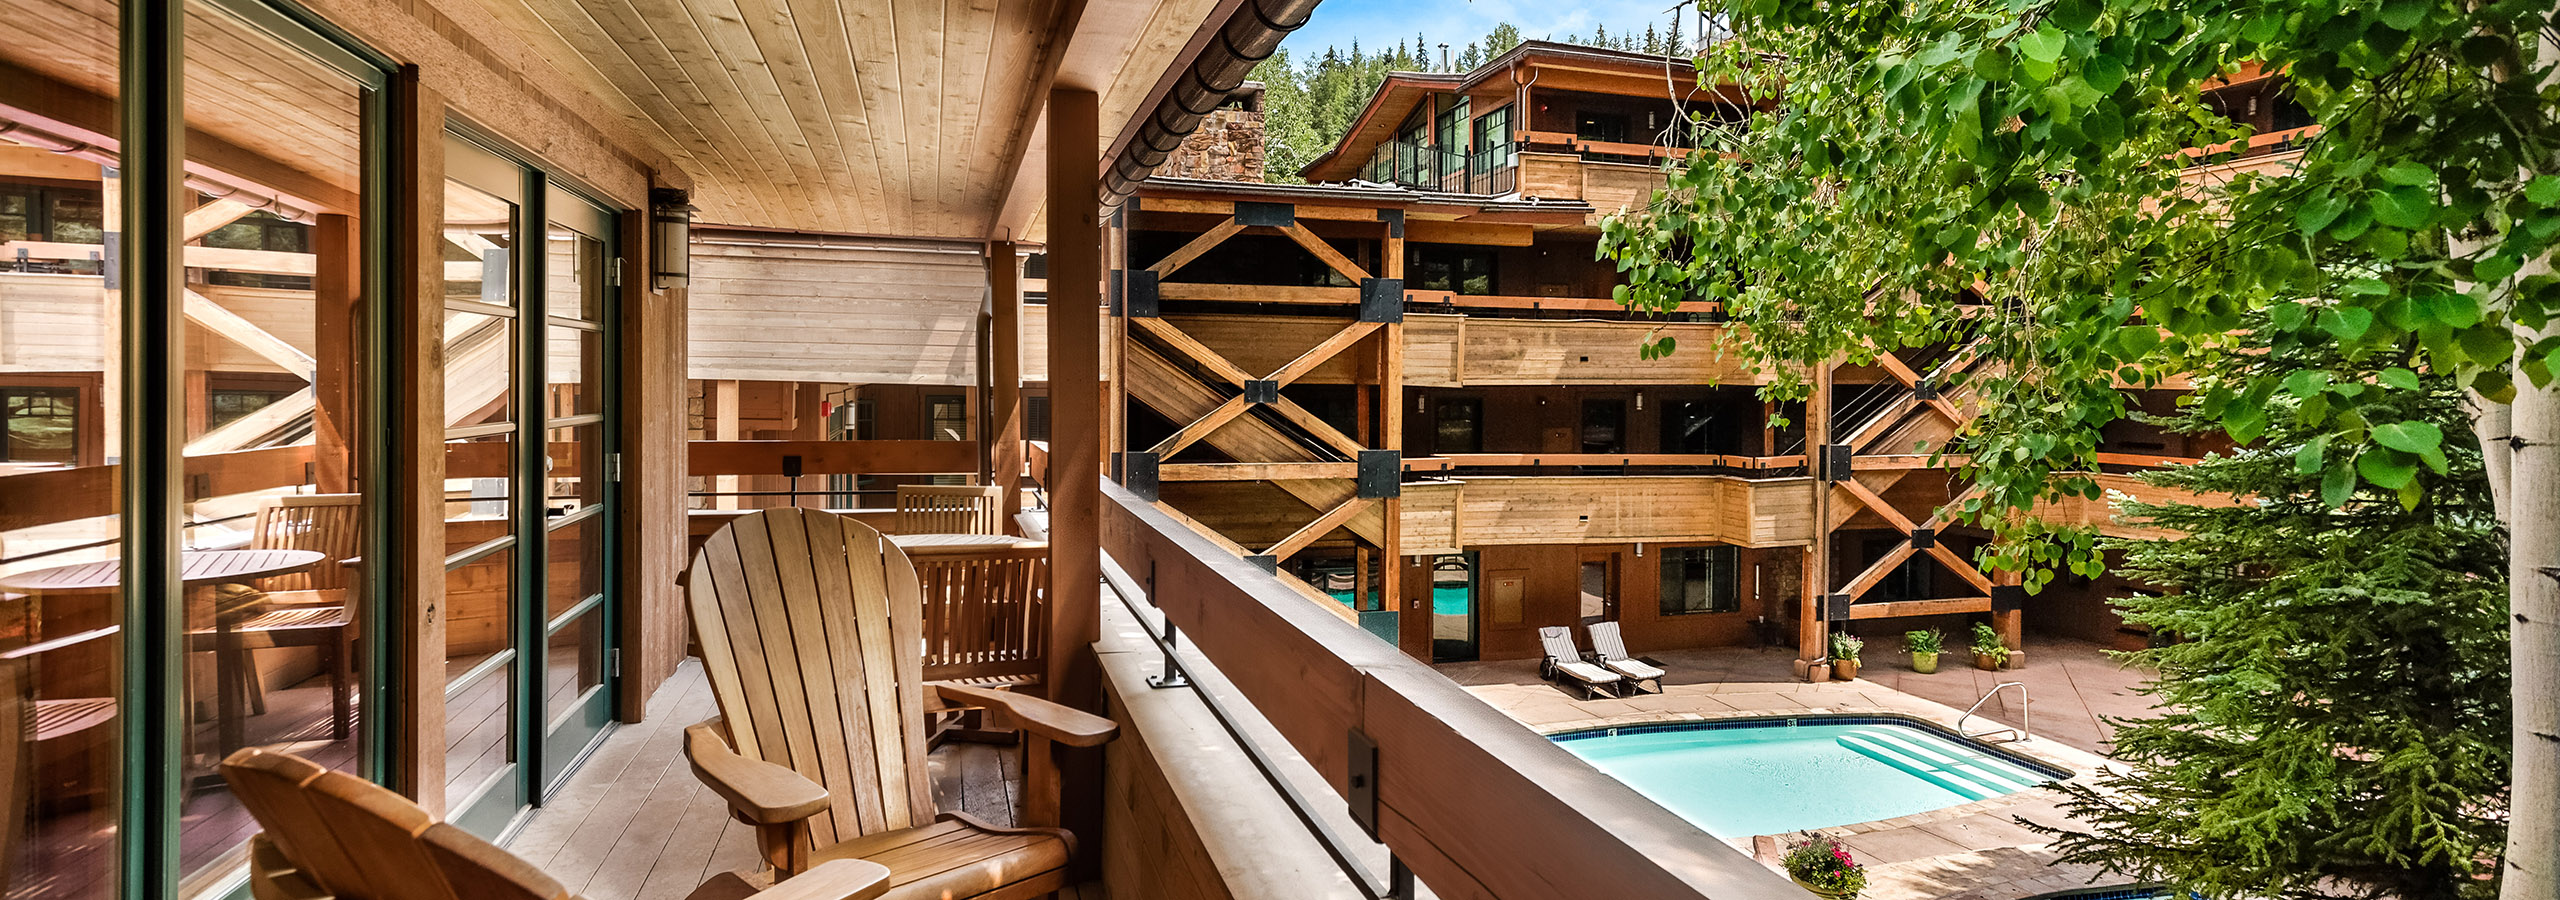 Fasching Haus Vacation Rentals in Aspen